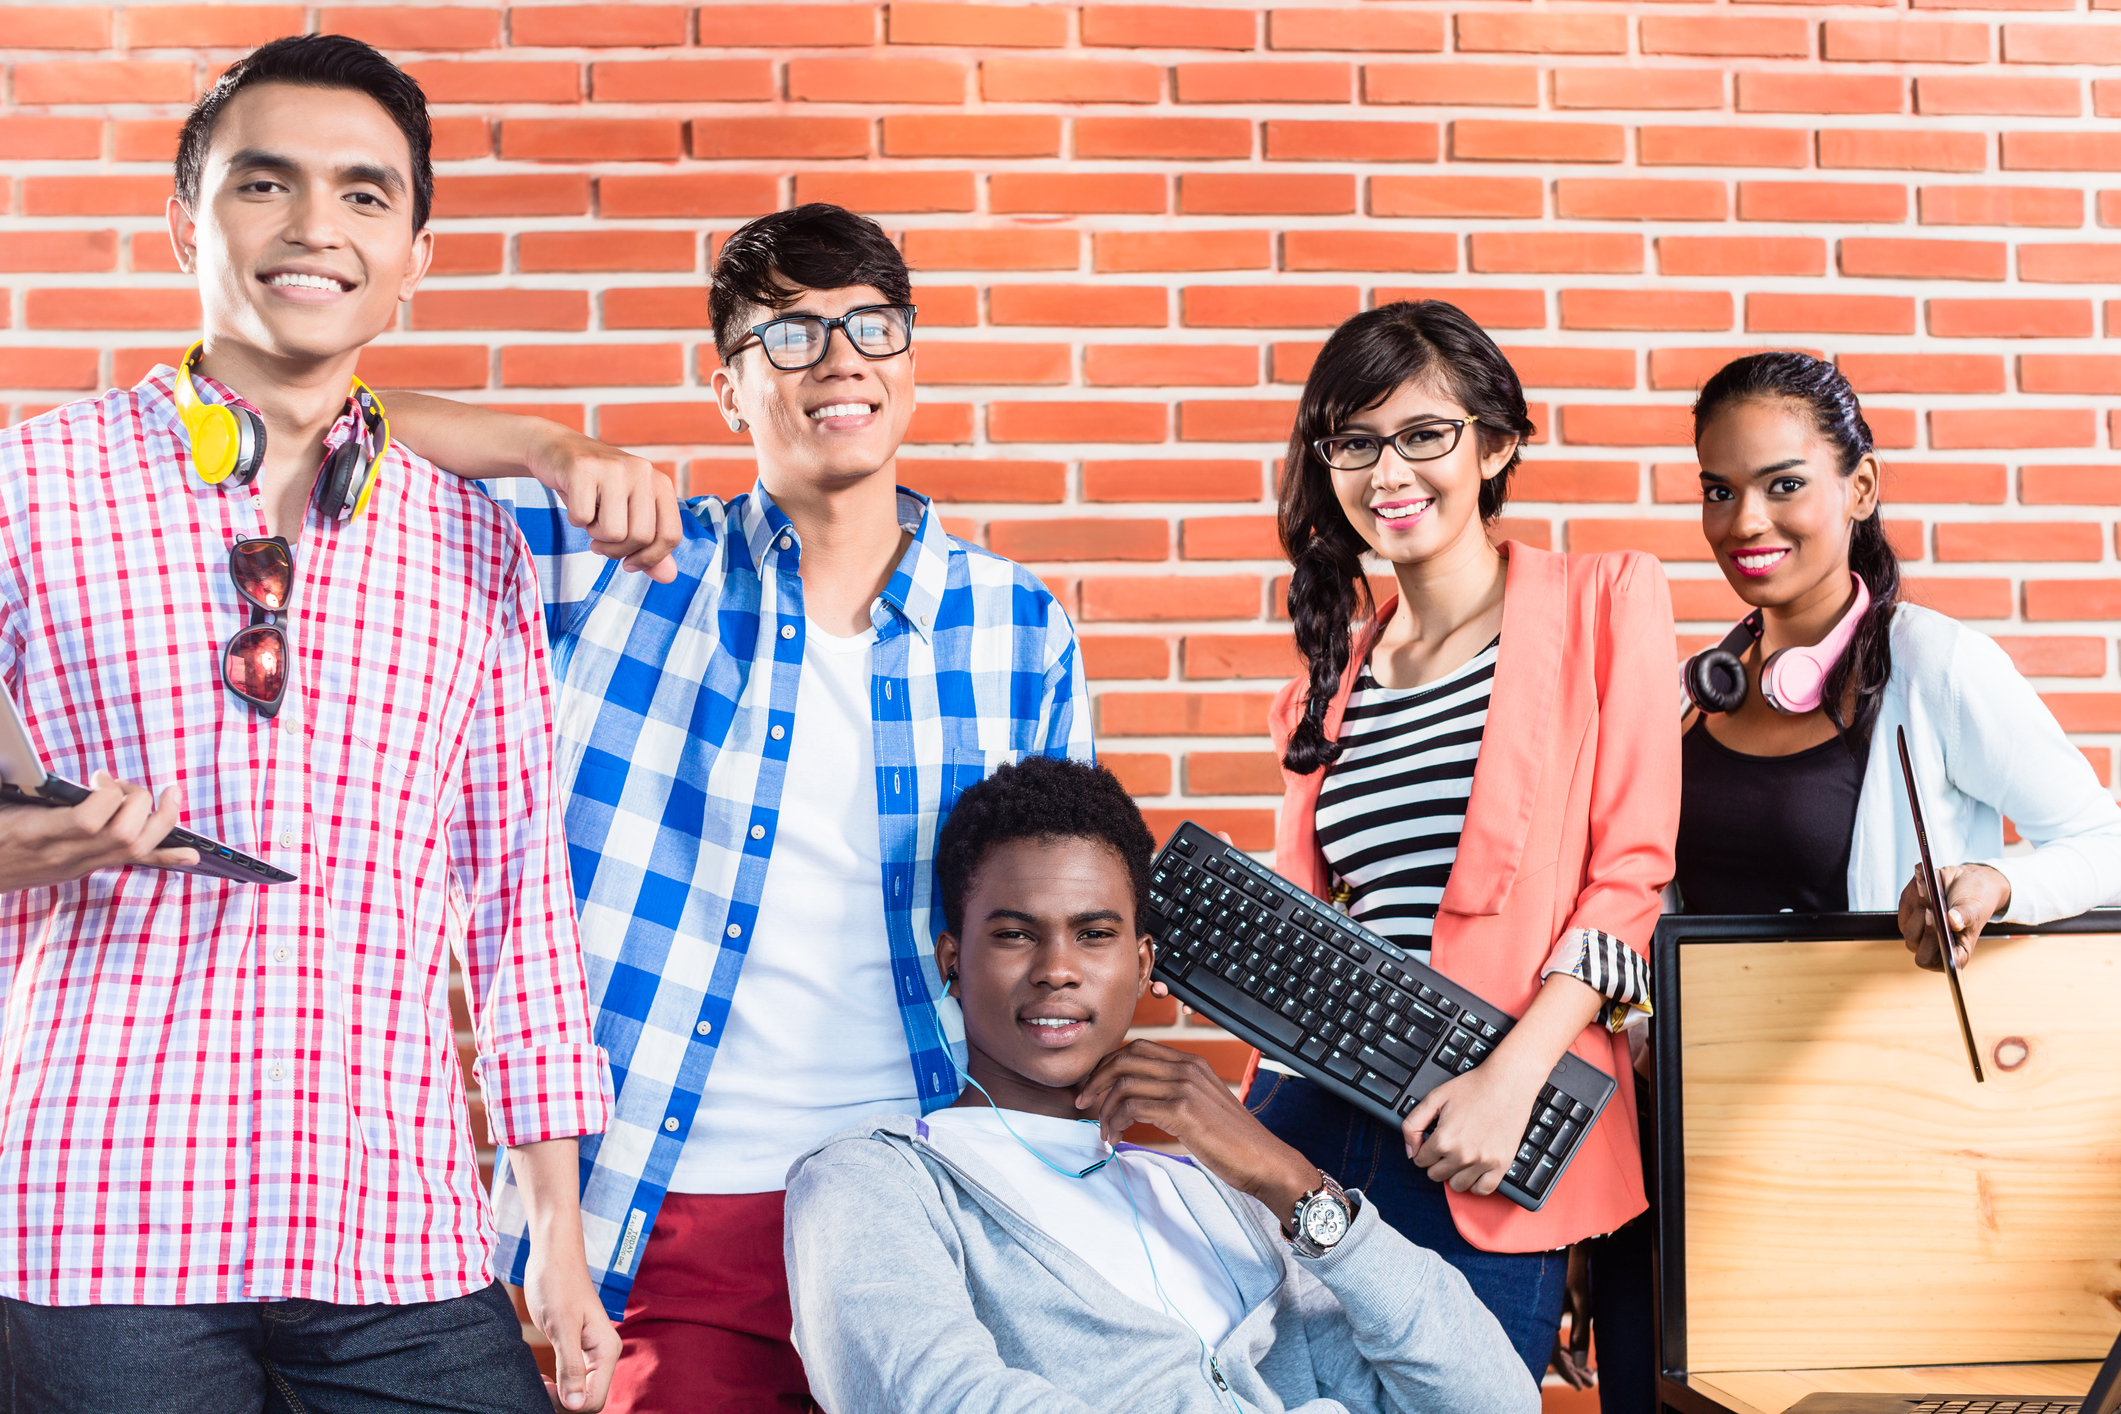 Diverse group of people with tech accessories in tech workplace smiling Bridging the diversity gap in tech